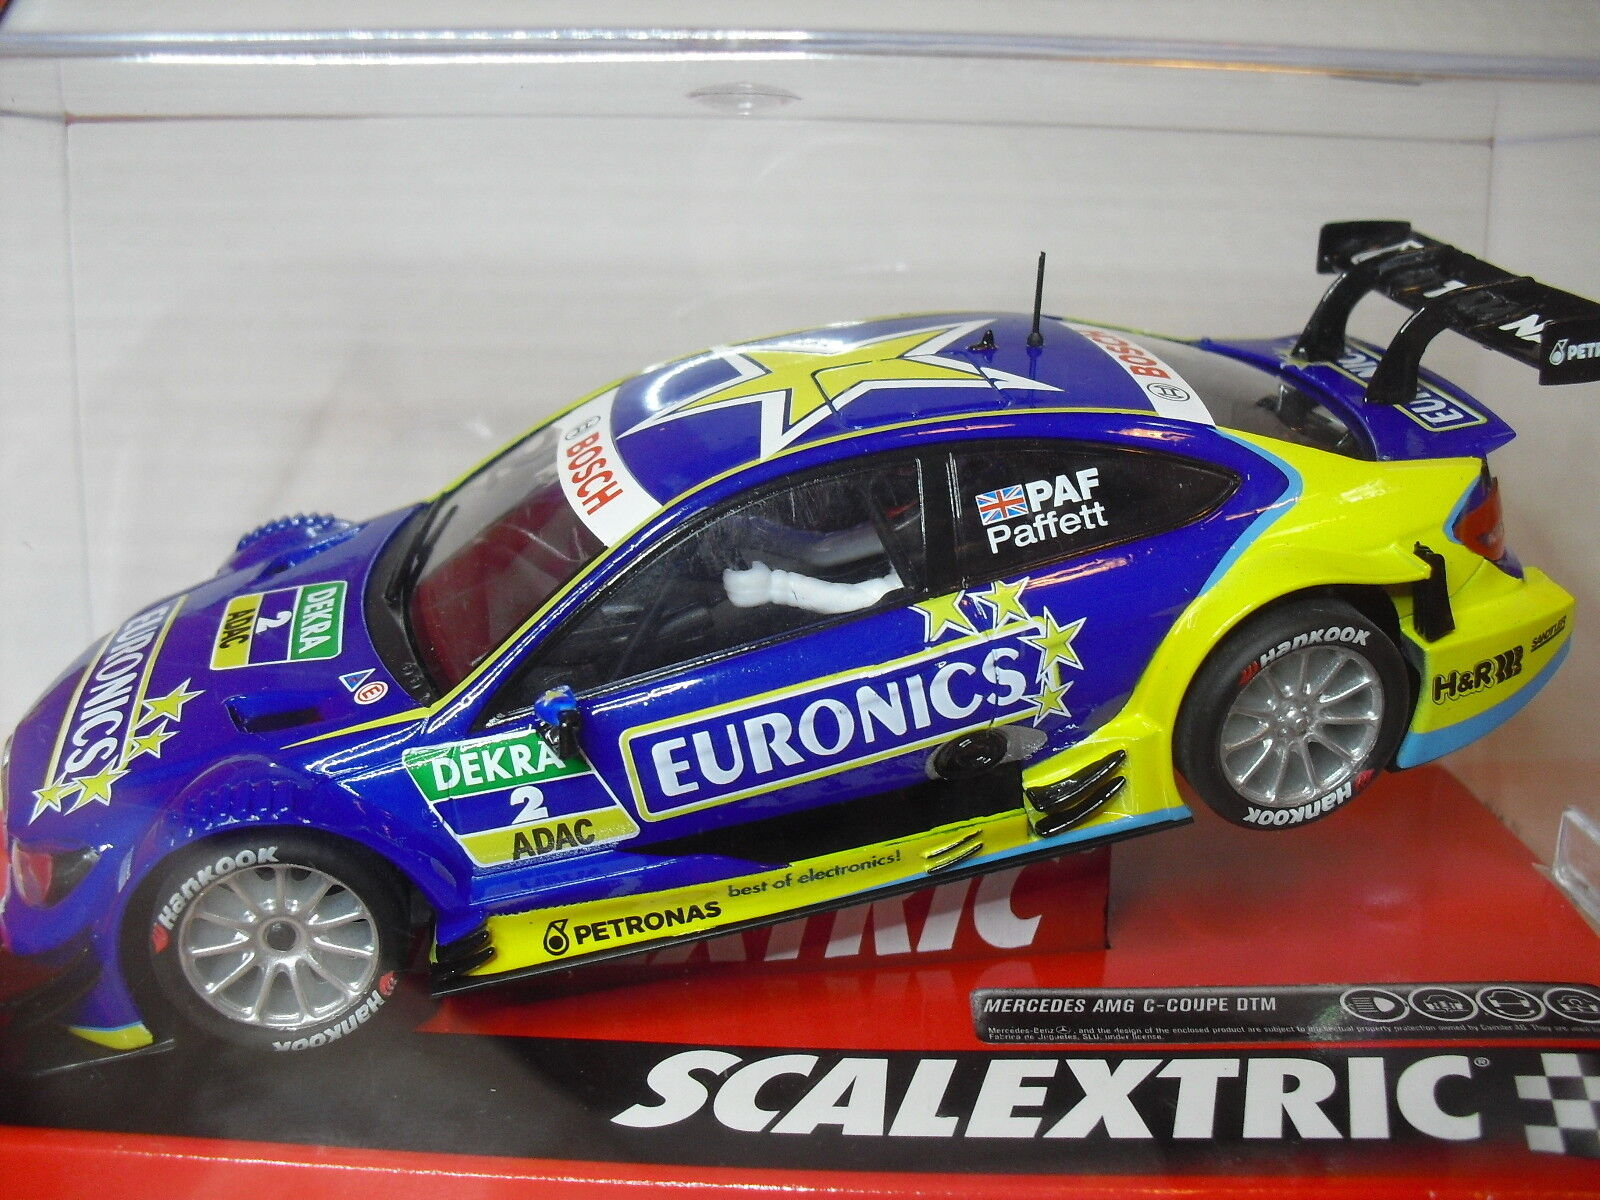 SCALEXTRIC A10214S300 Mercedes C - Coupe   Pafett  AMG DTM 1 32 new